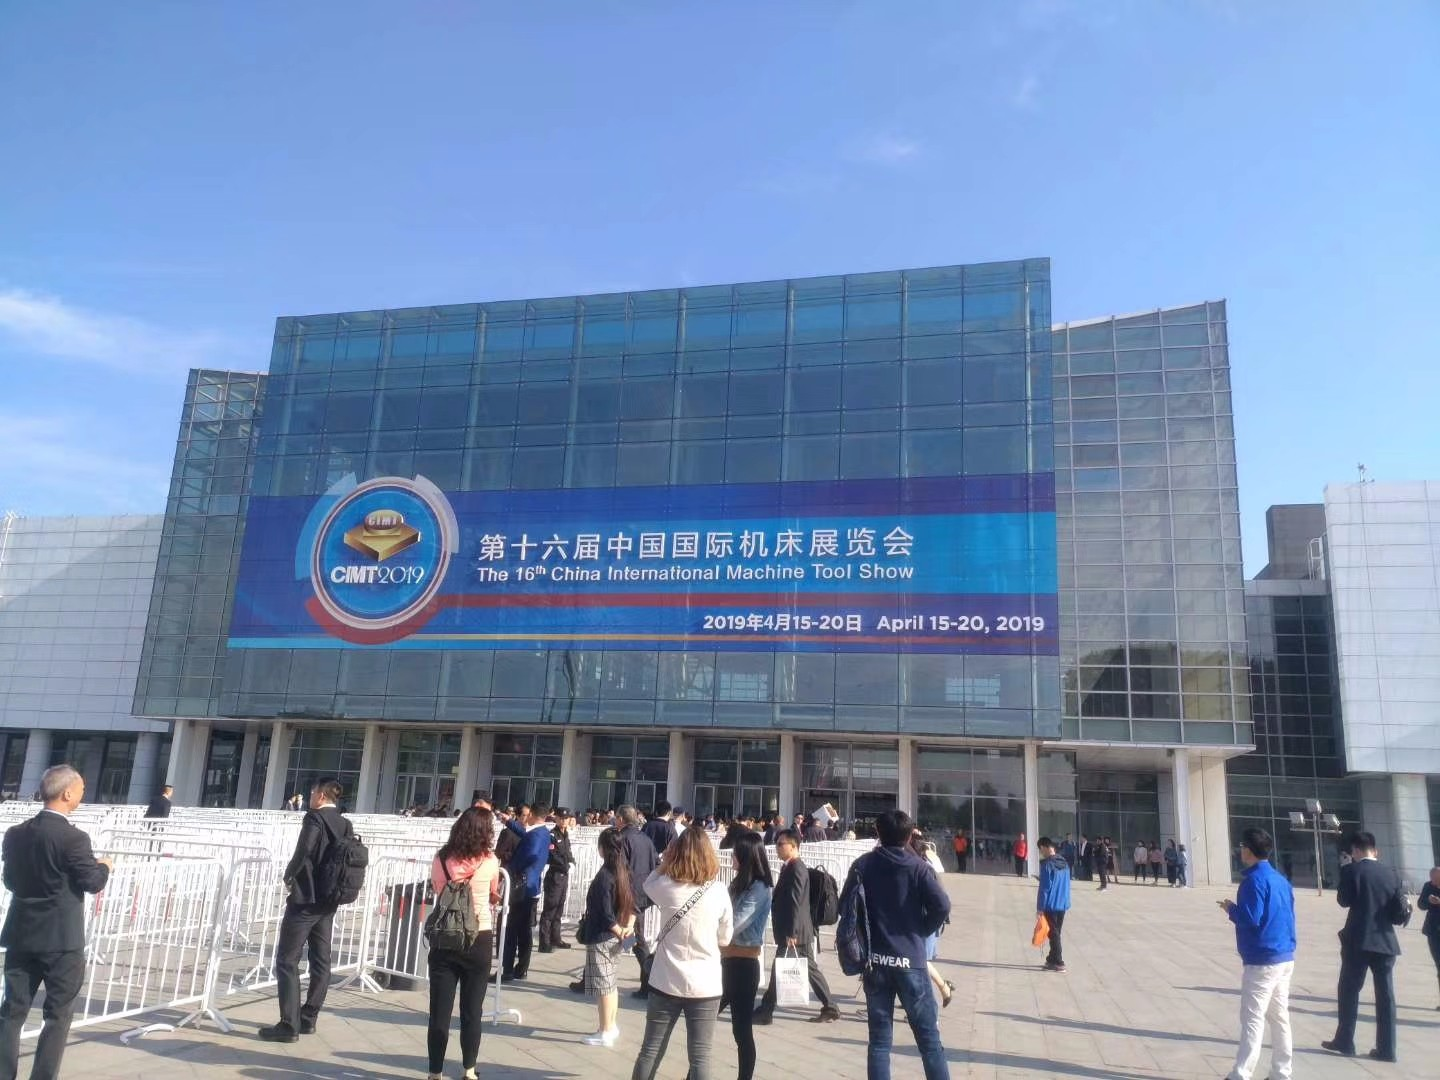 news-JSWAY in the 16th China International Machine Tool Show CIMT 2019-JSWAY-img